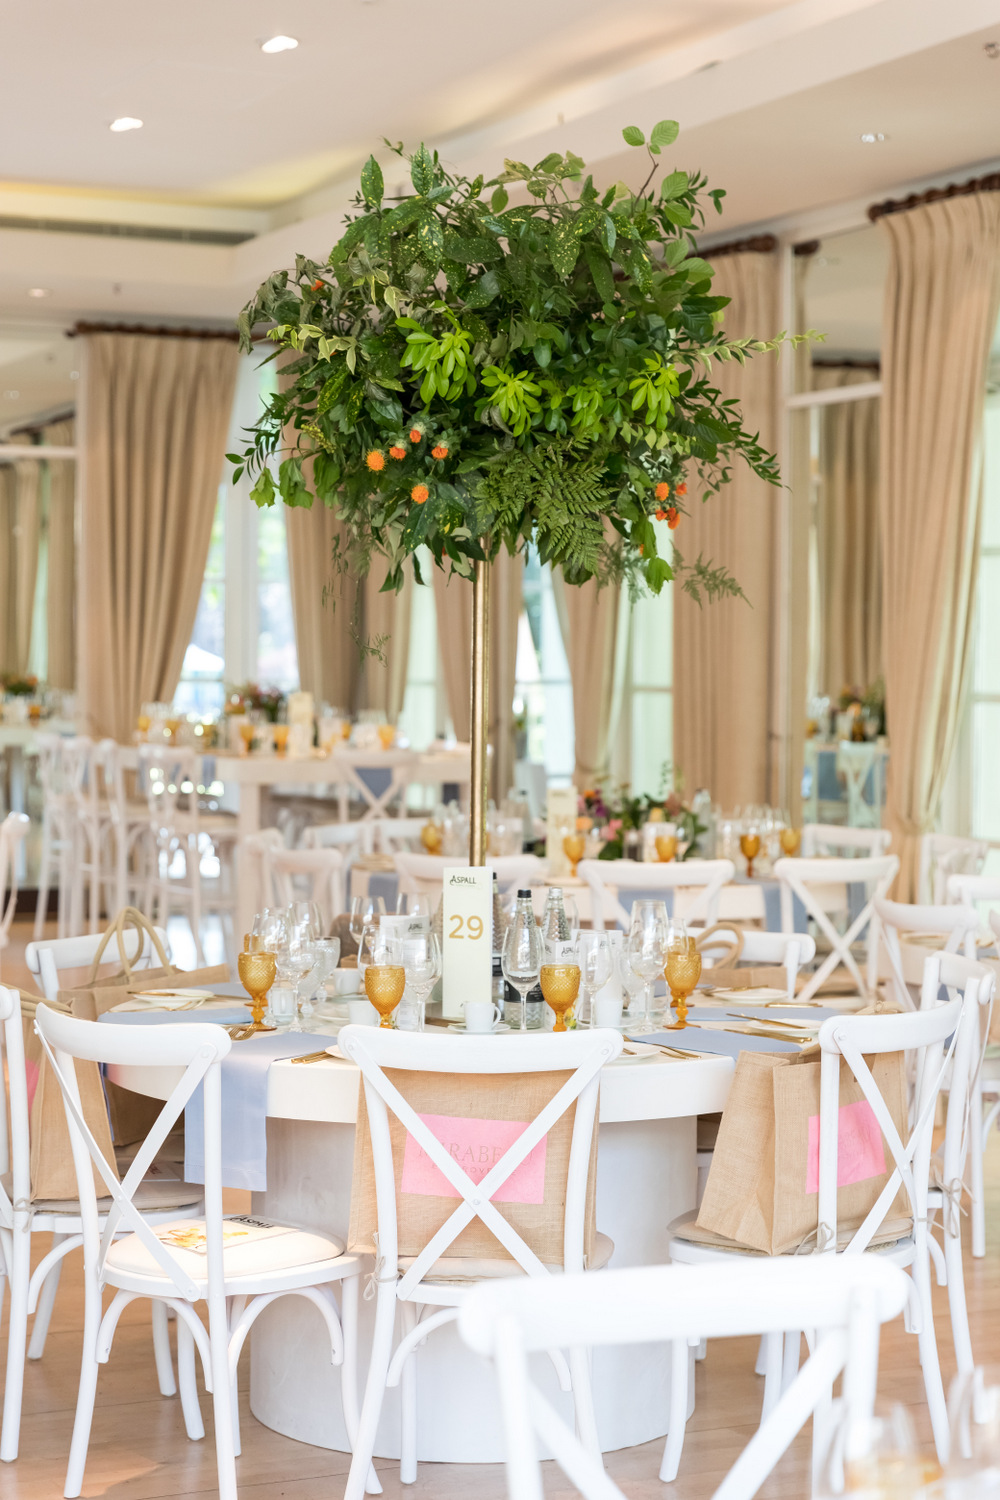 Mirabeau sponsored lunch during the Aspall Tennis Classic at Hurlingham Club